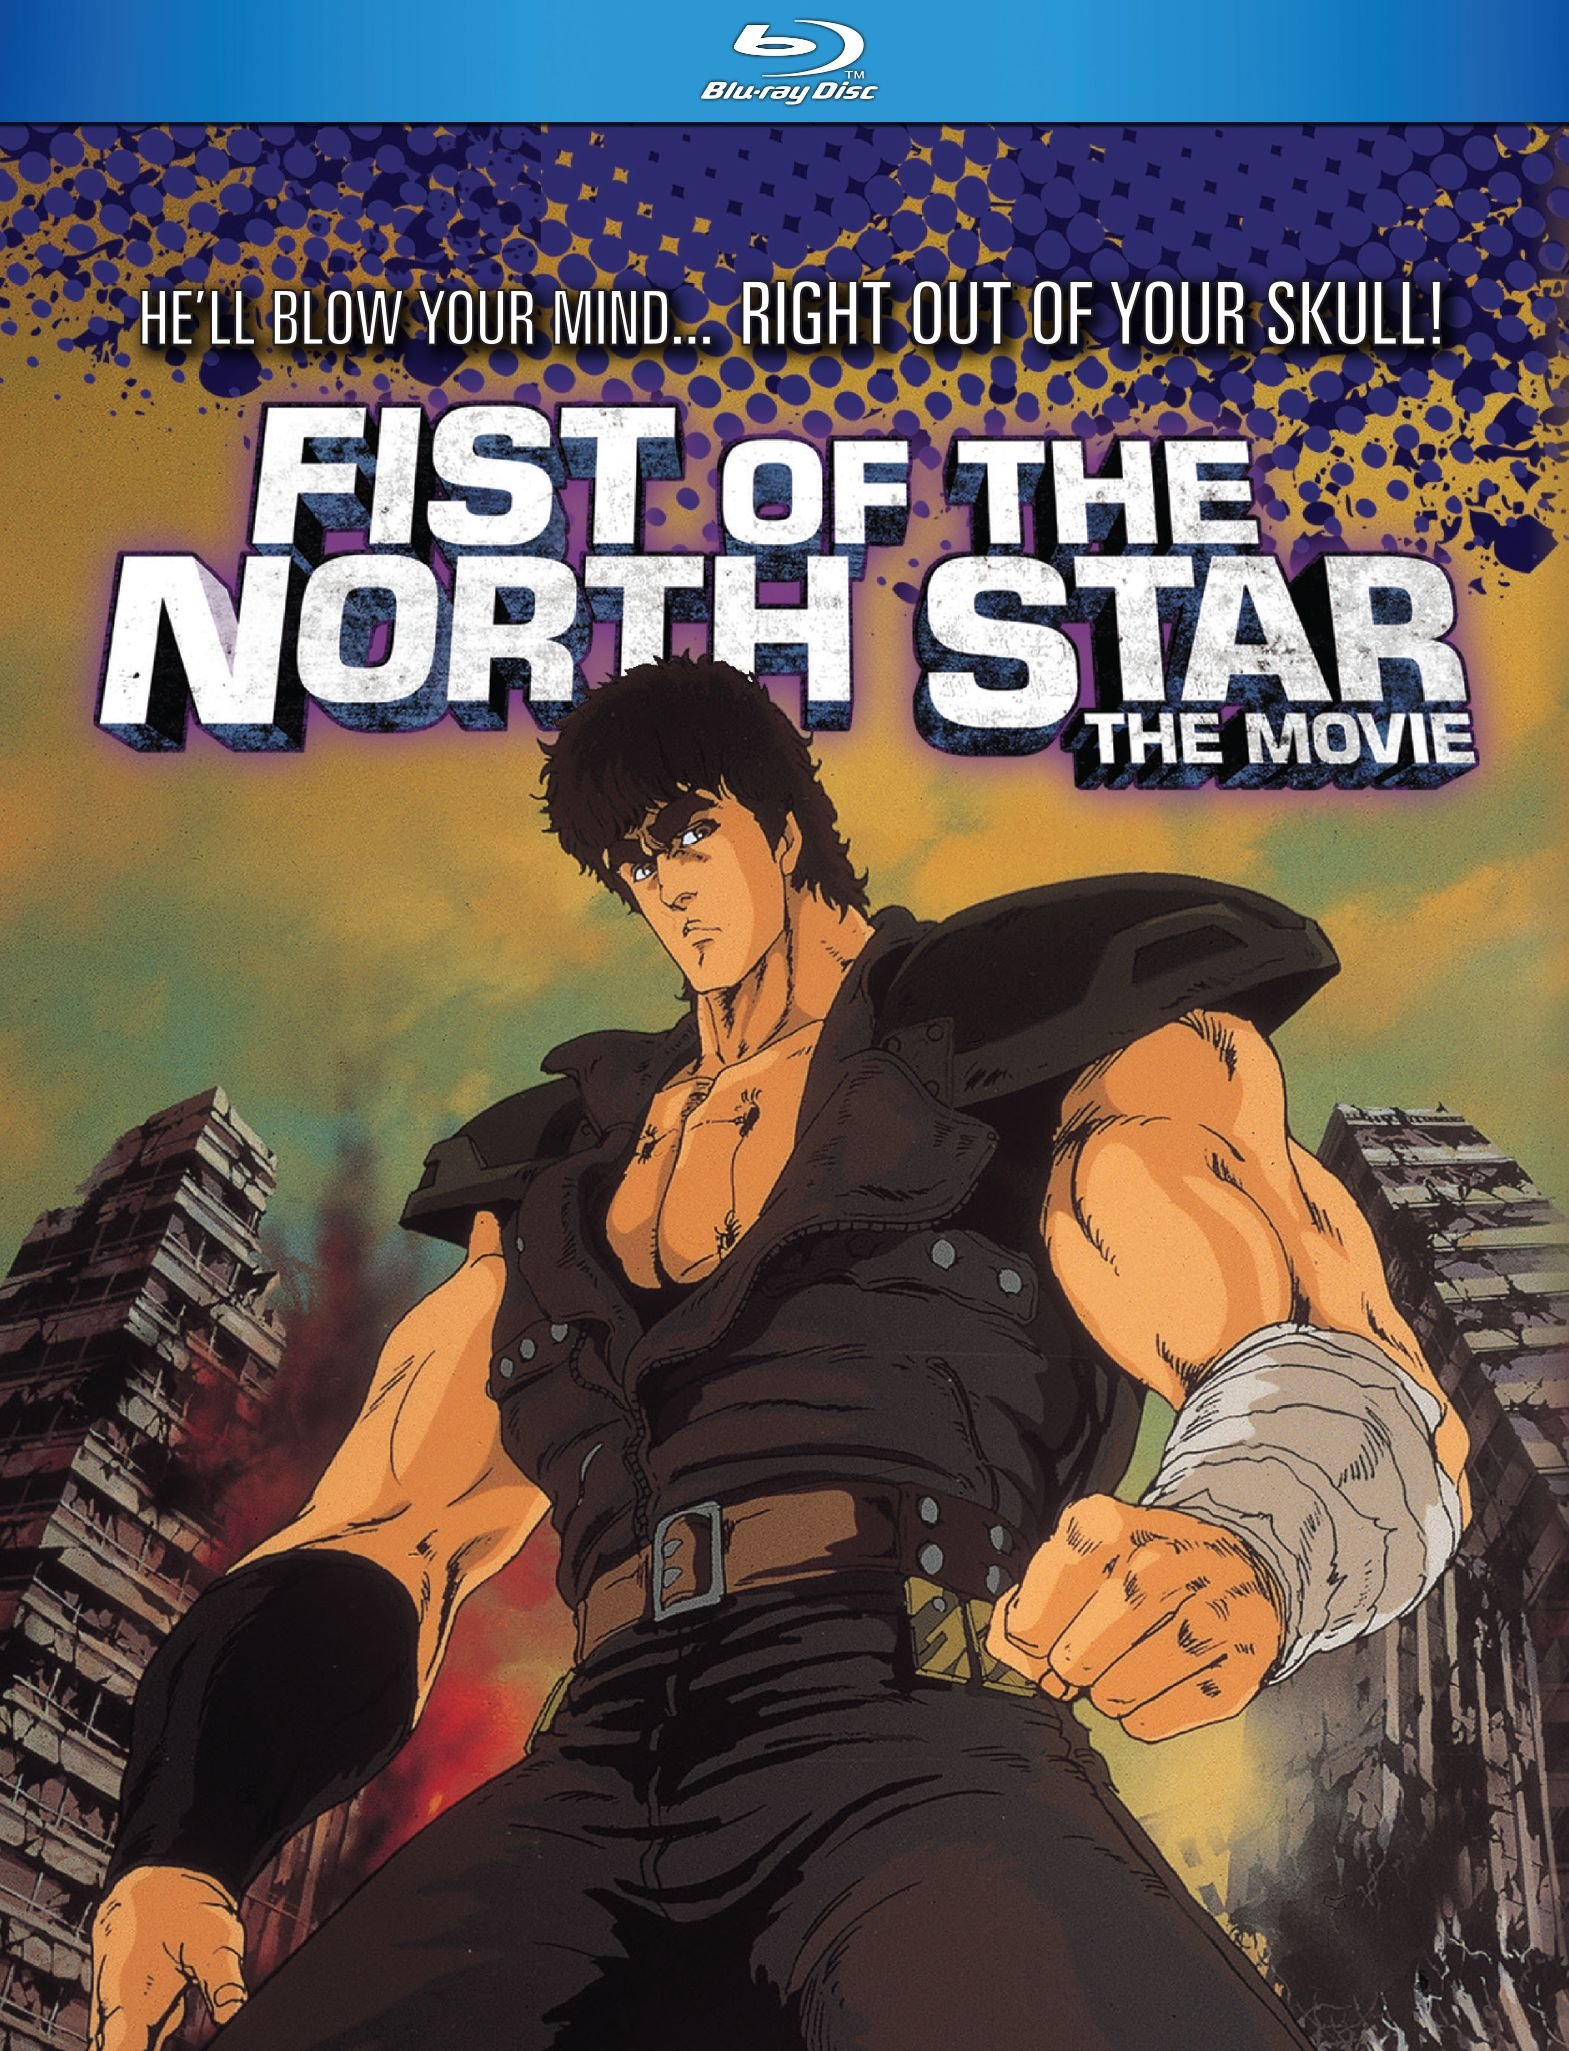 Fist of the North Star The Movie (Fist of the North Star The Movie) [Blu-ray] by Discotech Media